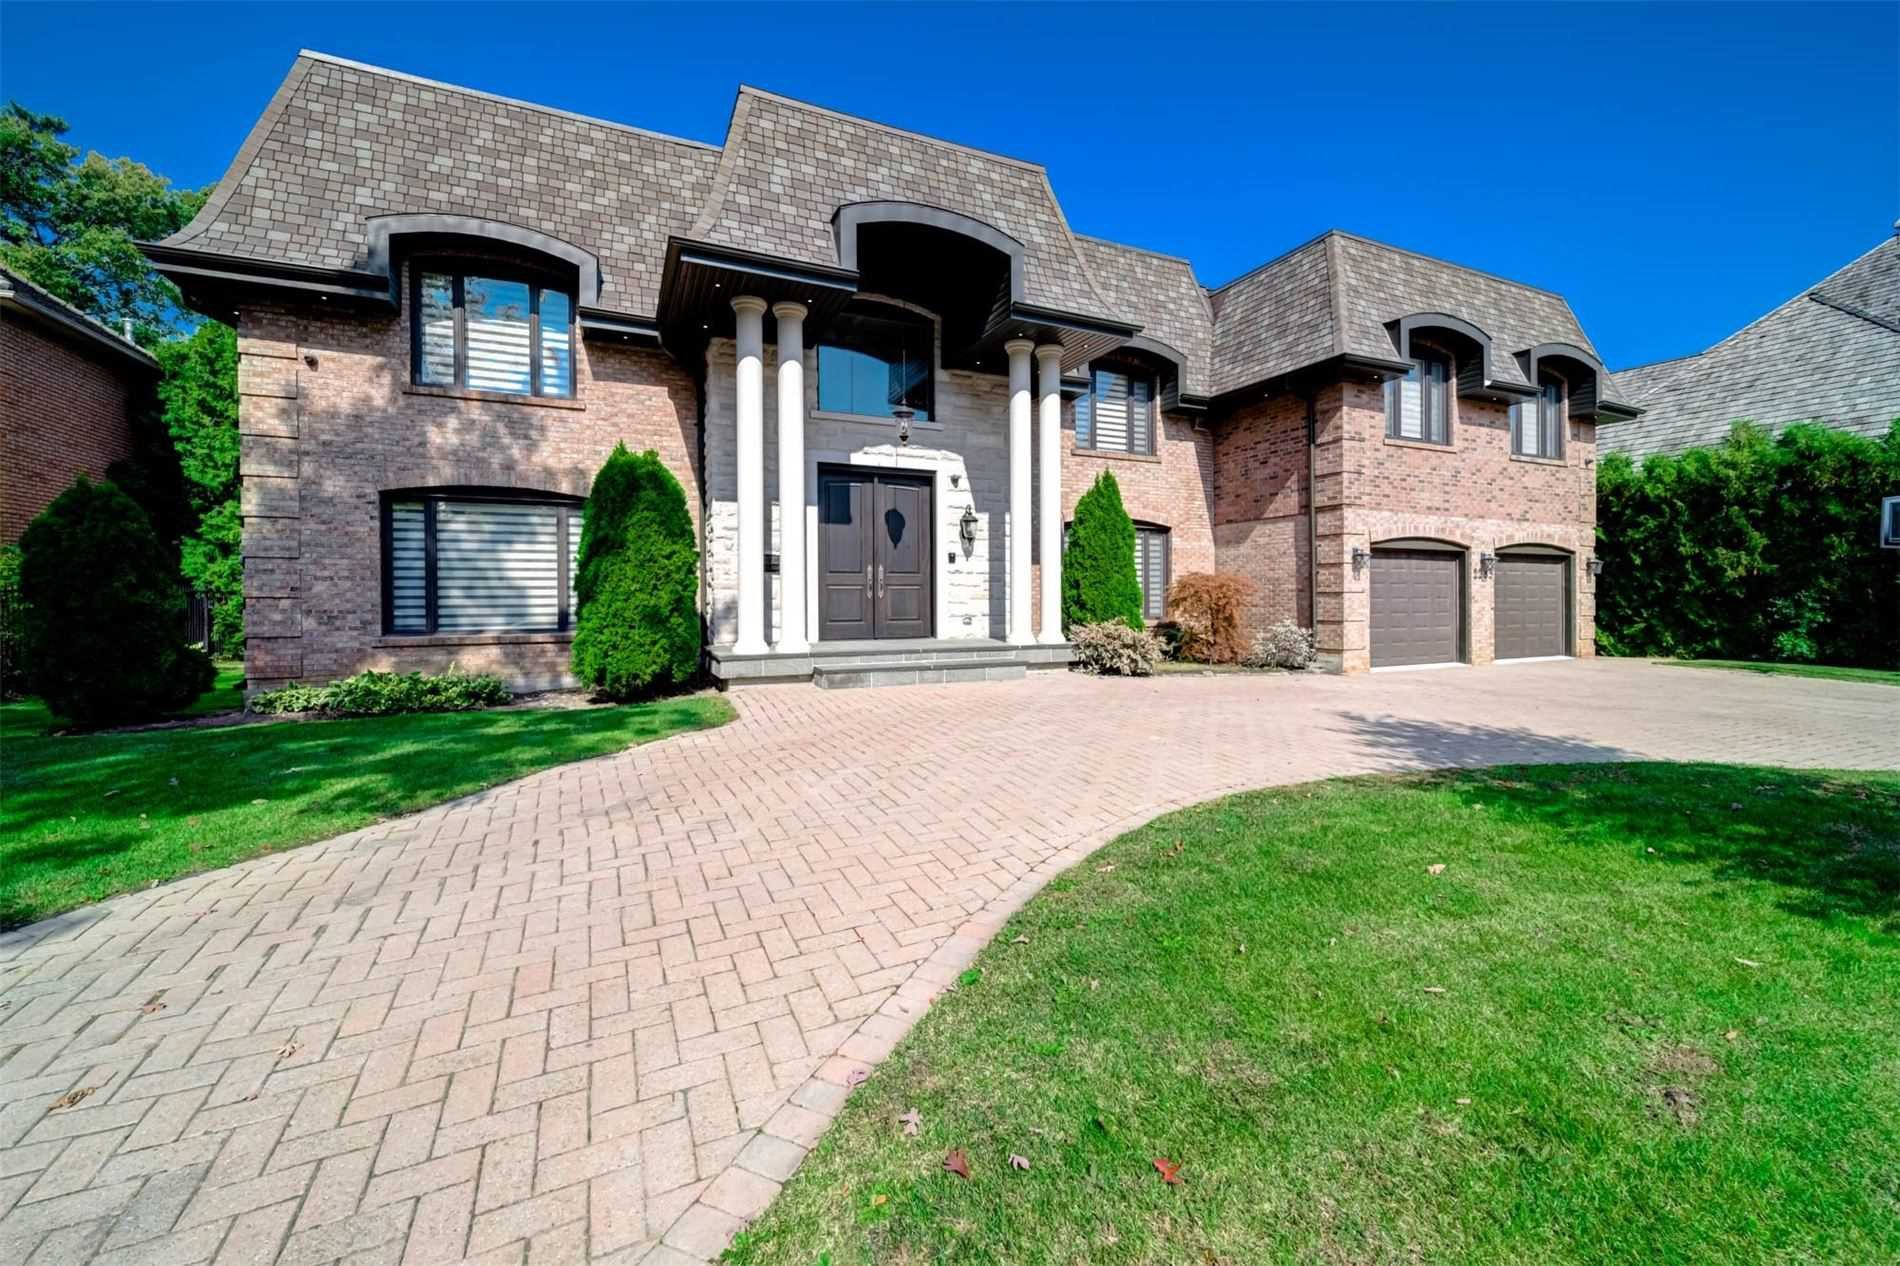 Main Photo: 2285 Shawanaga Tr in Mississauga: Sheridan Freehold for sale : MLS®# W4934055